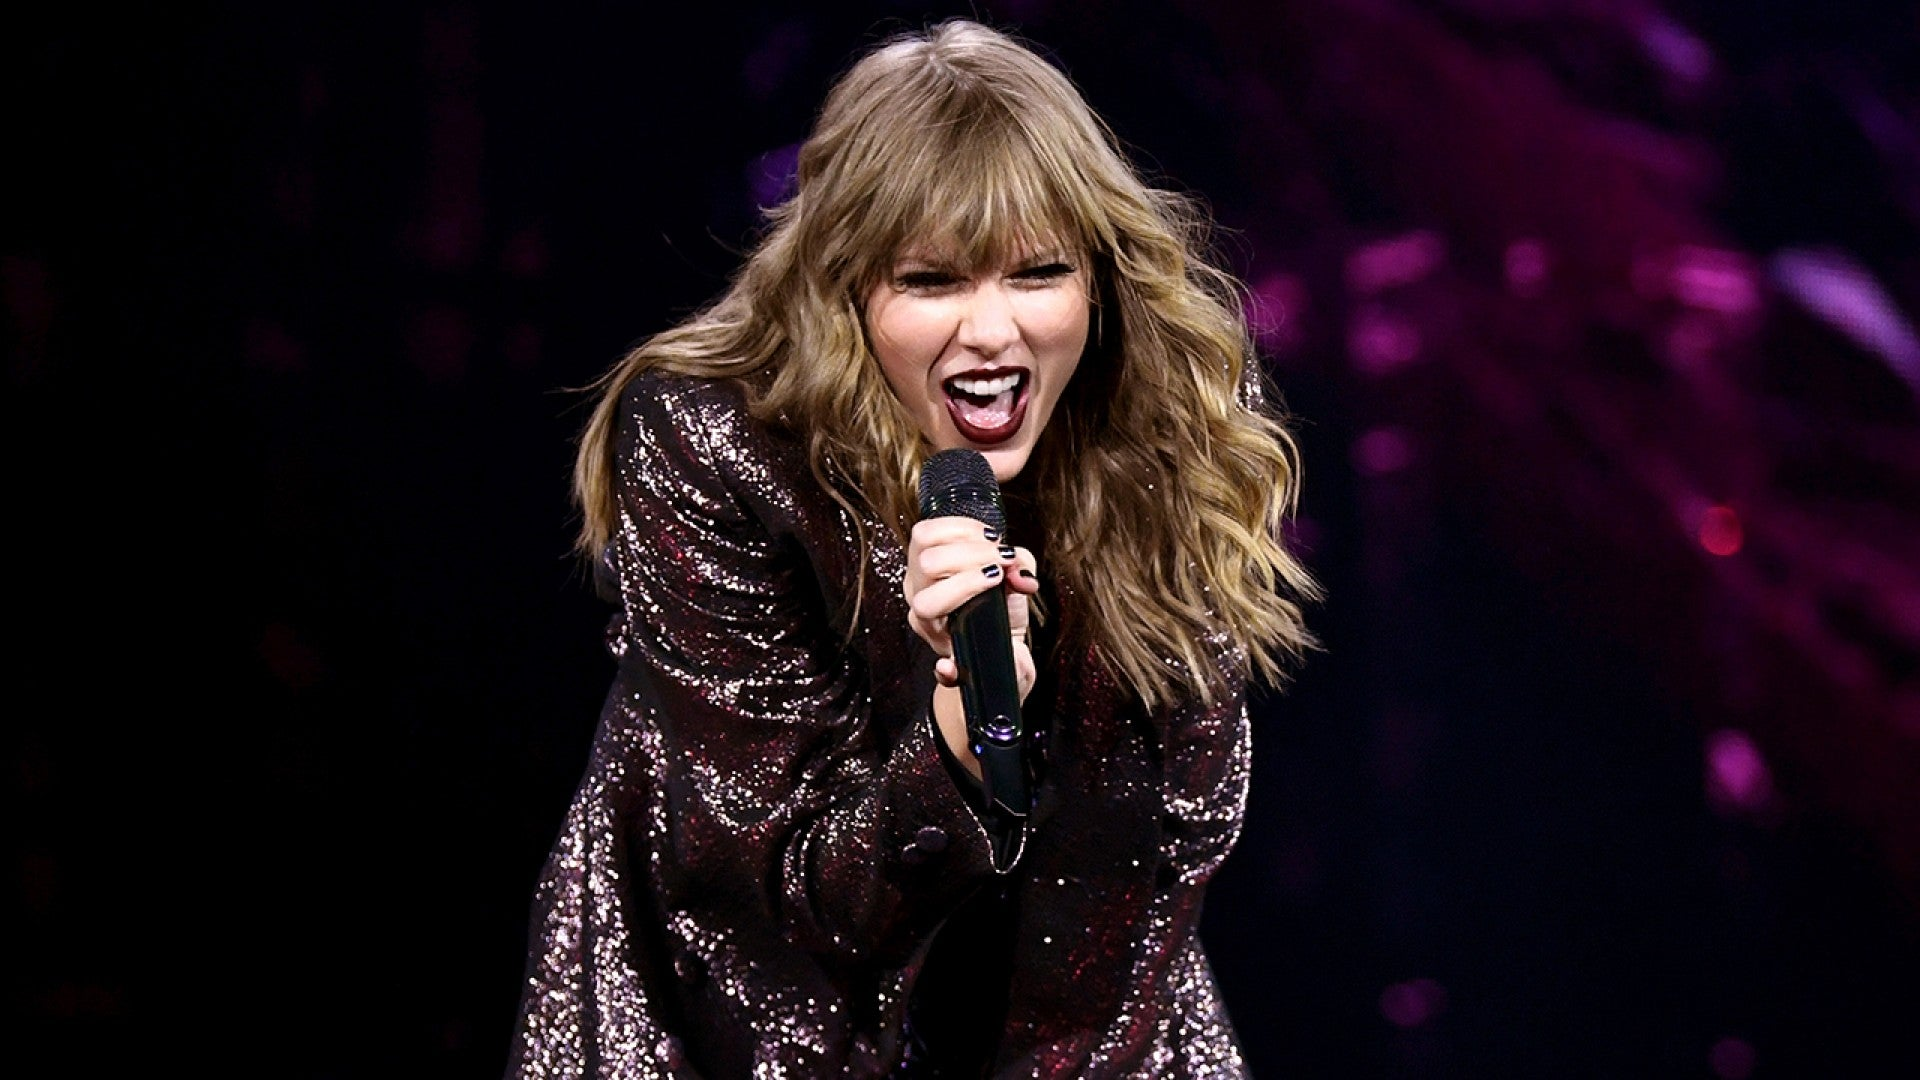 Taylor Swift Is A Total Boss Babe Singing Blank Space In Netflix Concert Film Exclusive Clip Entertainment Tonight